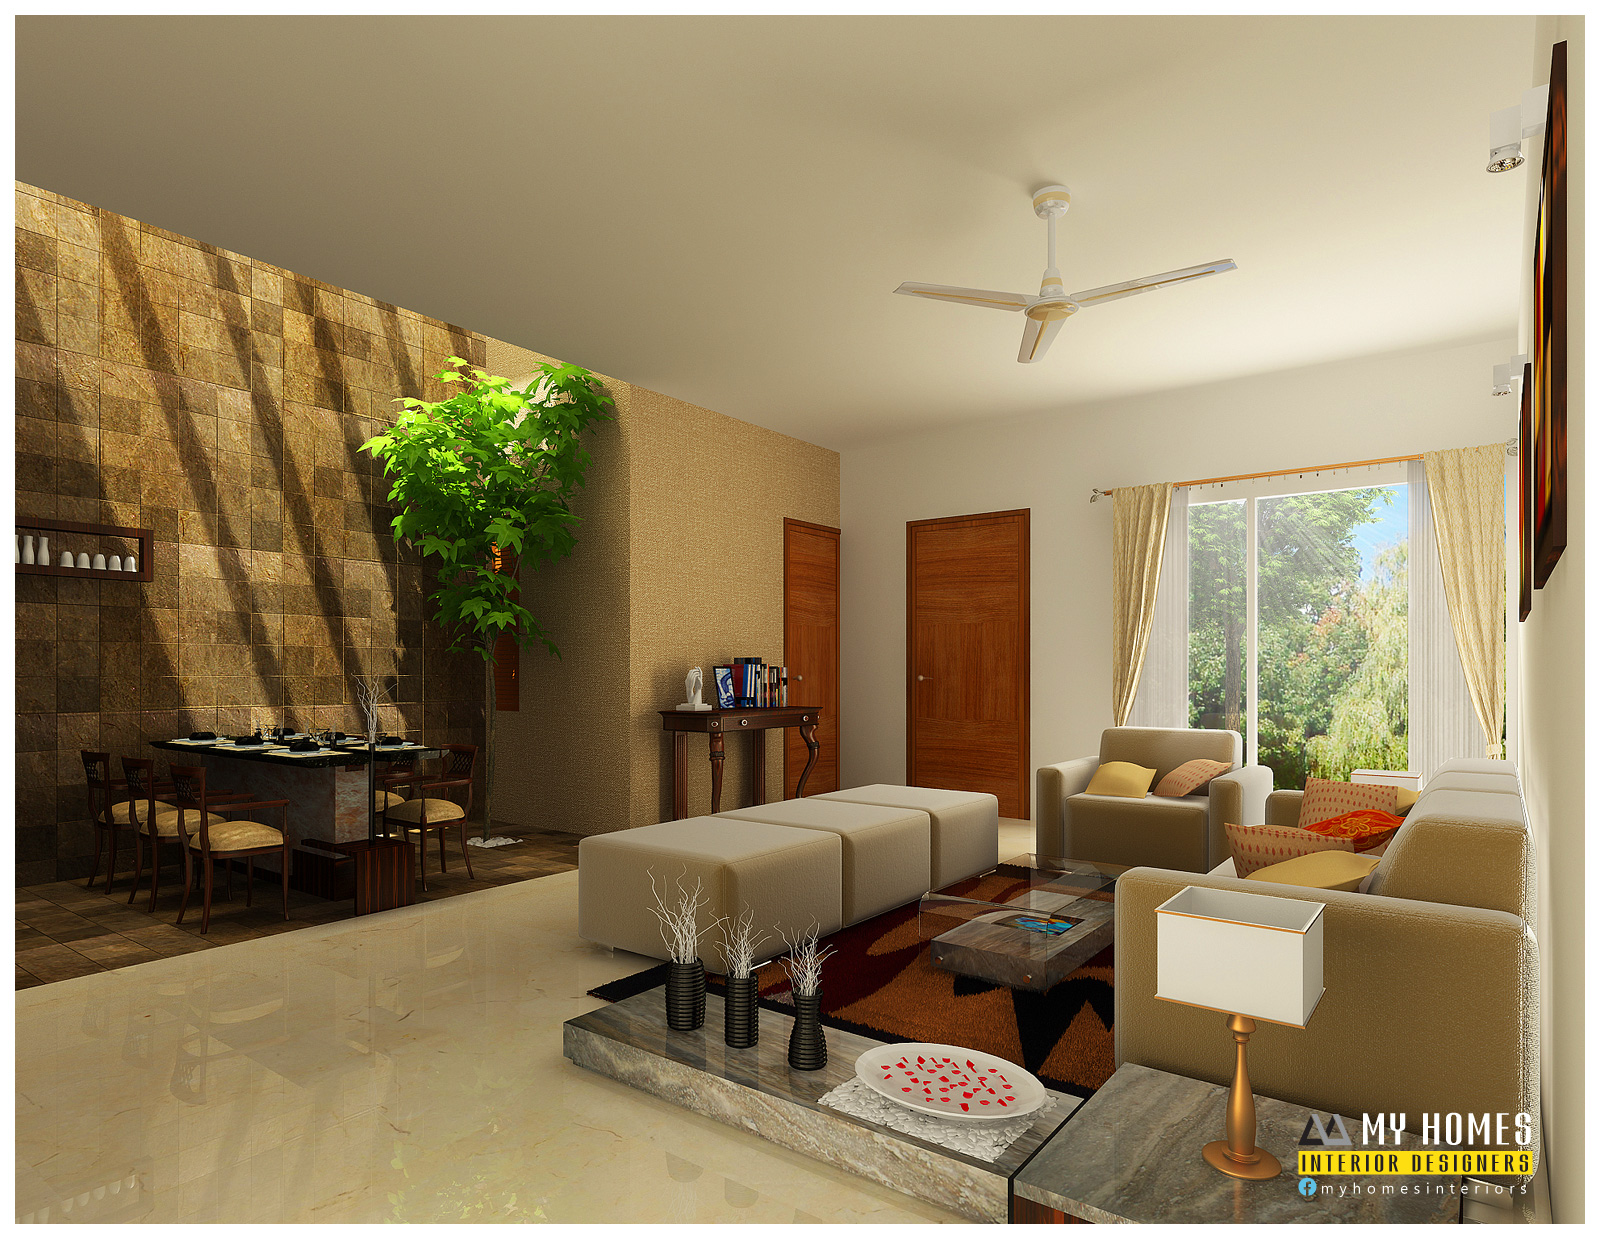 interior design my house. ideas for kerala home design interior in low cost from designing company thrissur